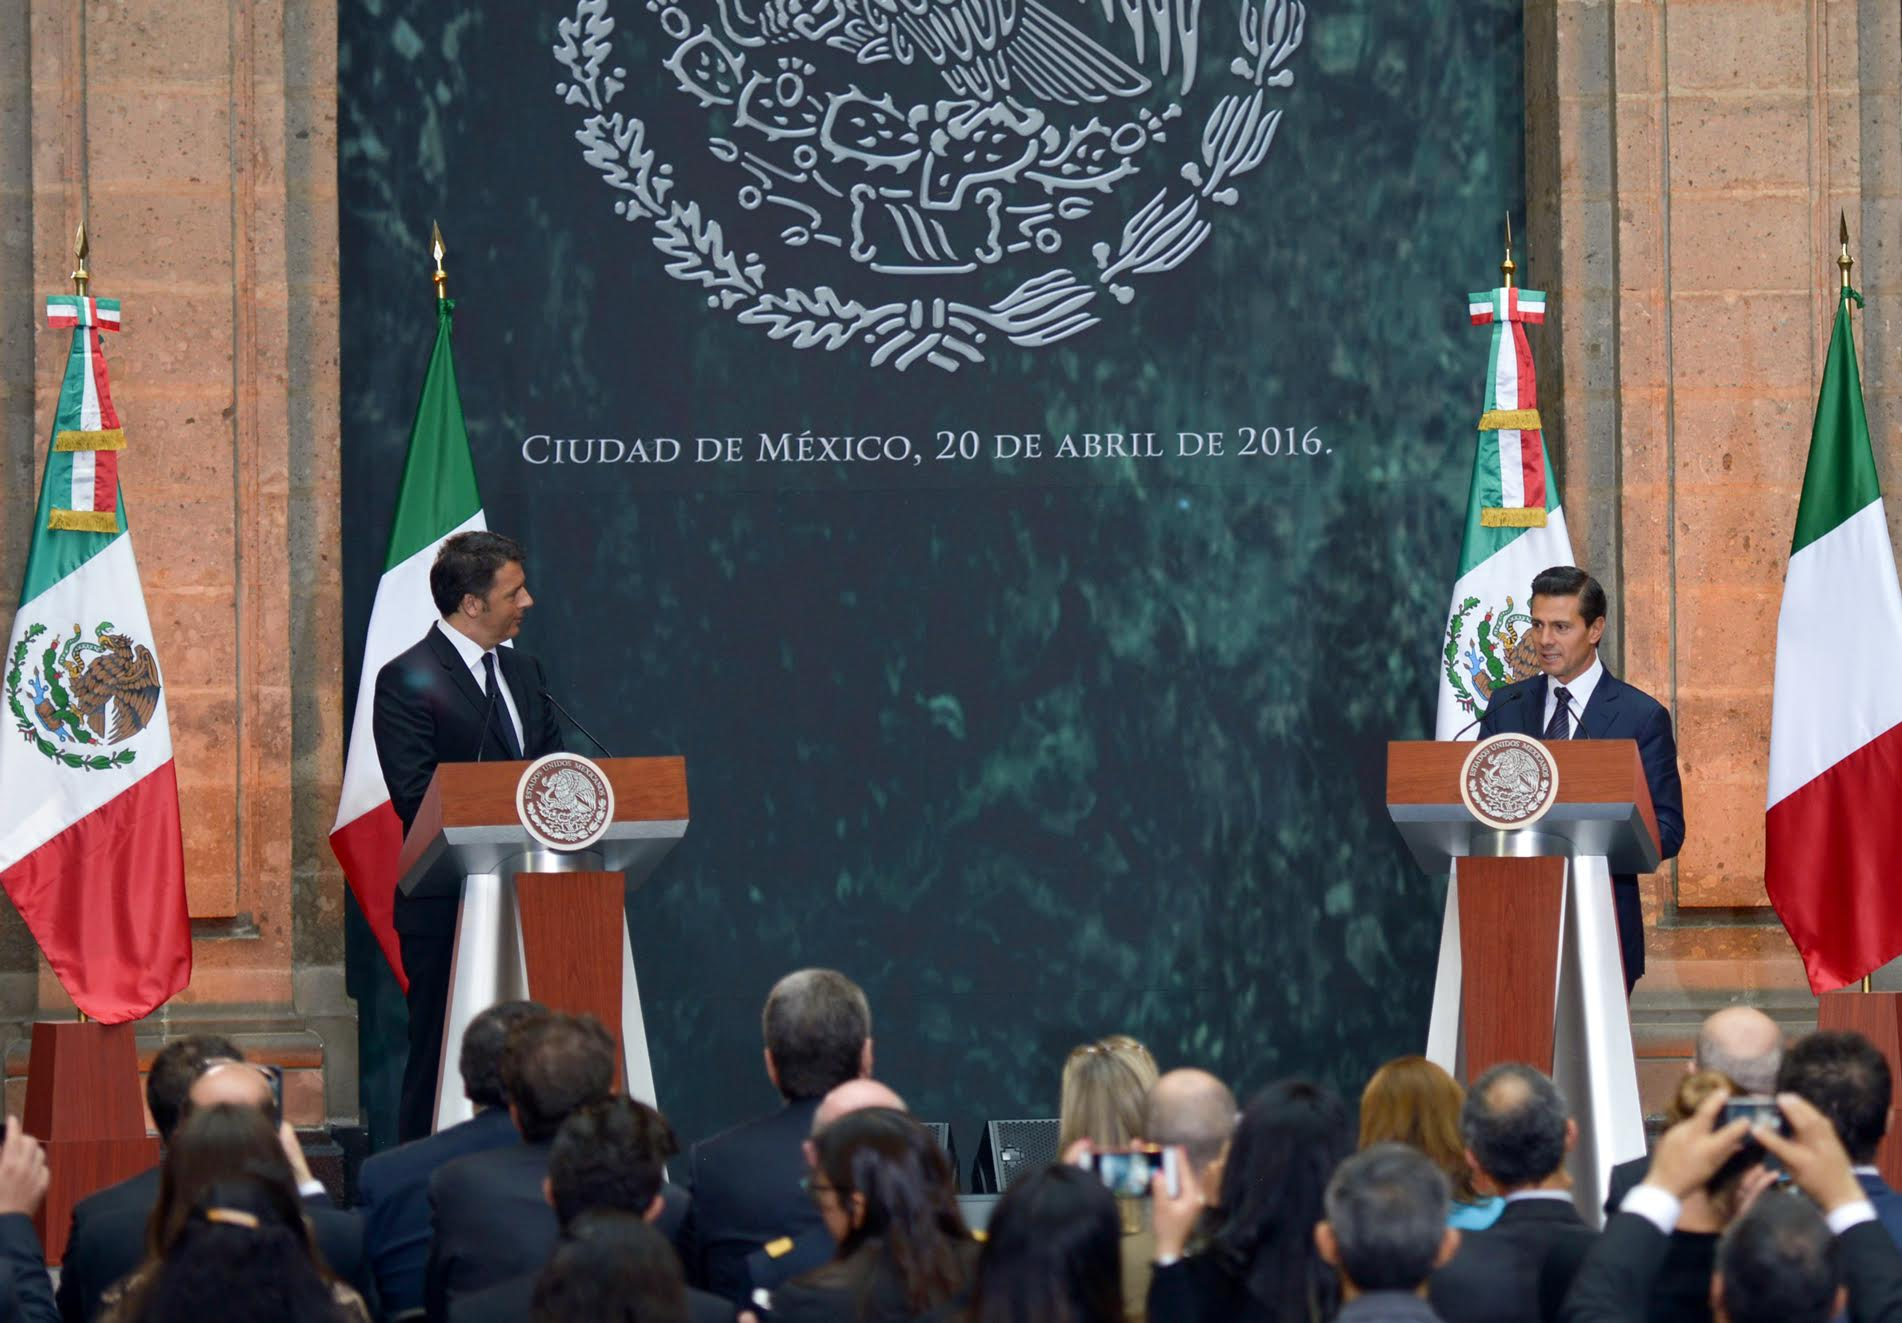 Italy is Mexico's third largest trading partner in the European Union.